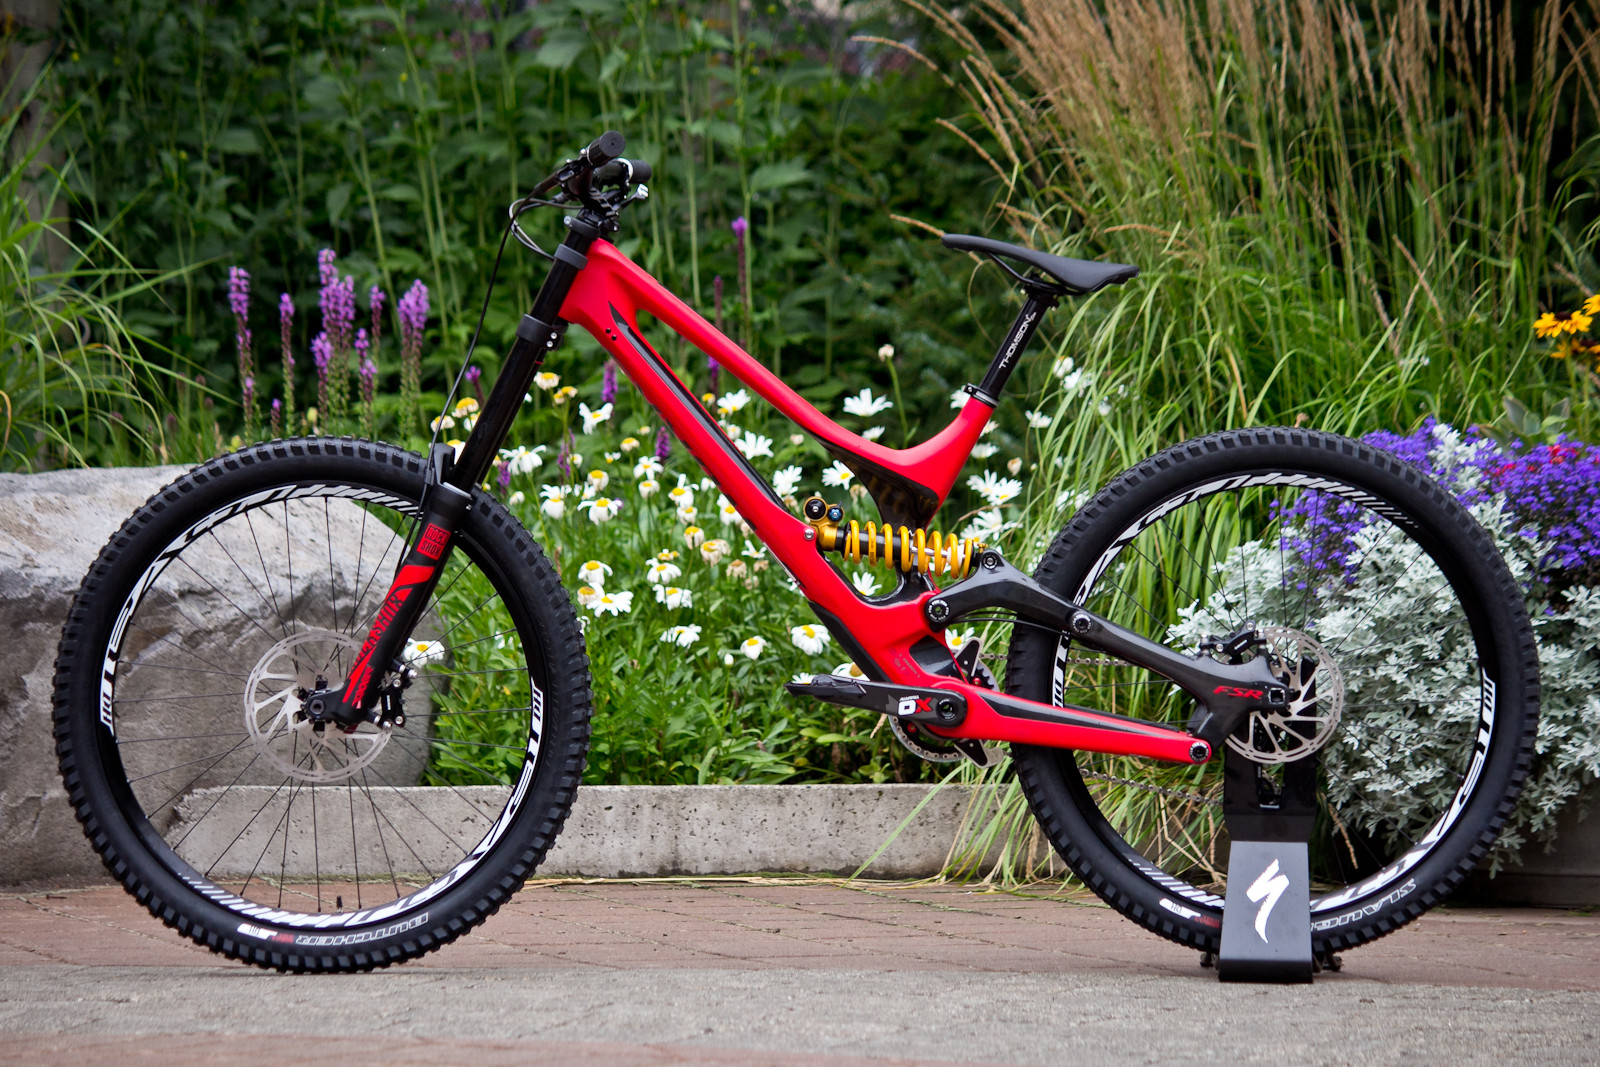 Up Close: 19 Photos of the 2015 Specialized S-Works Demo Carbon - Up Close: 19 Photos of the 2015 Specialized S-Works Demo Carbon - Mountain Biking Pictures - Vital MTB